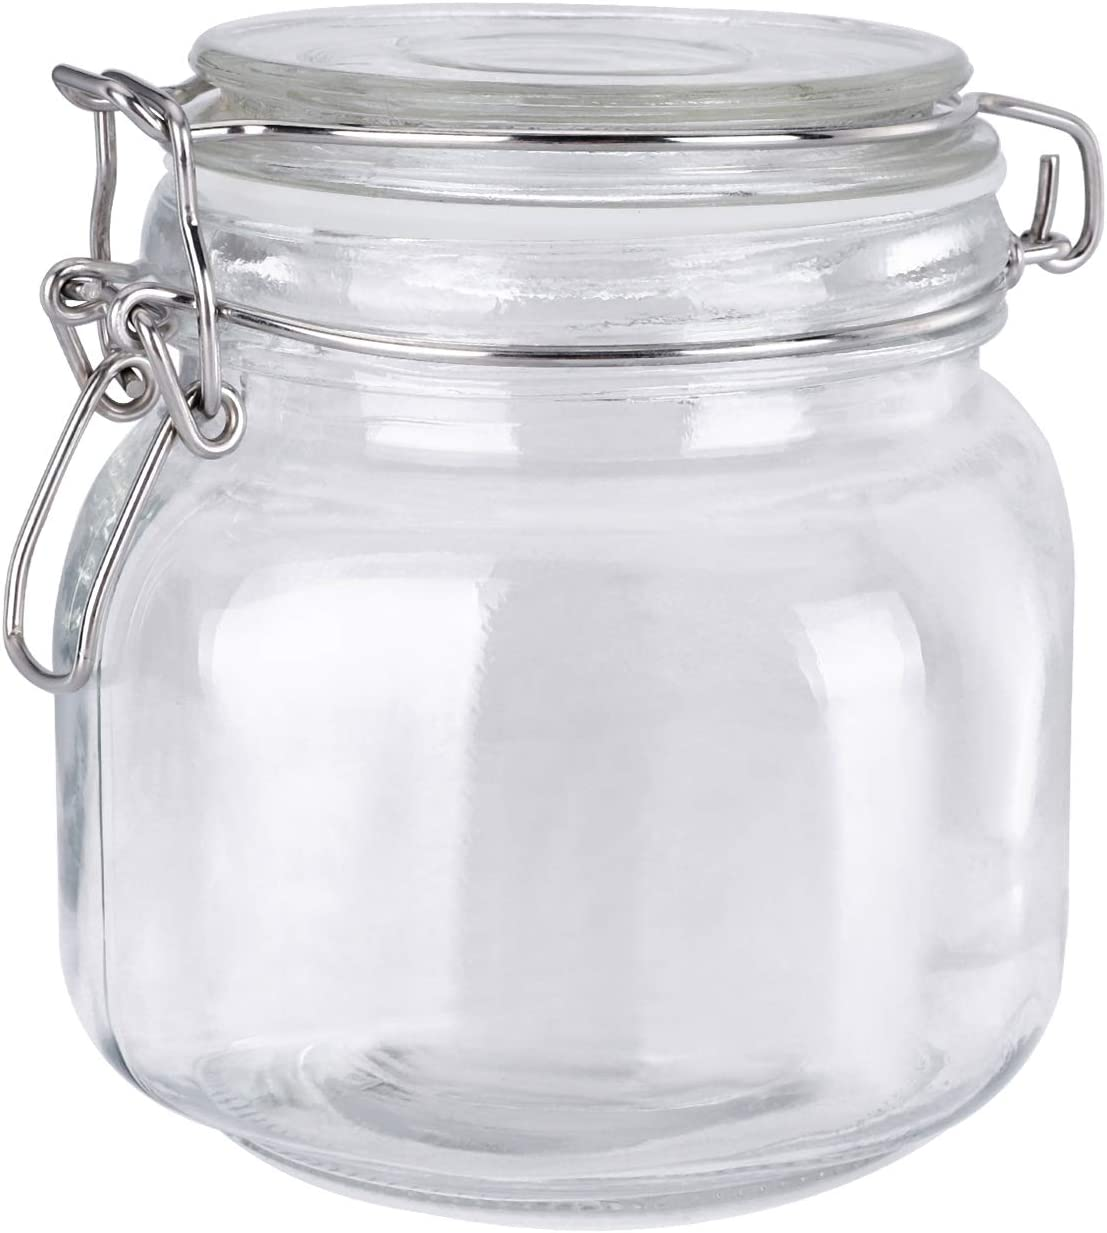 MUCH 25OZ Kitchen Food Storage Canister Mason Jar with Lid, Clear Canning Container, Wide Mouth Airtight Glass Preserving Jar with New Stainless Steel Locking Clamp and Rubber Seal